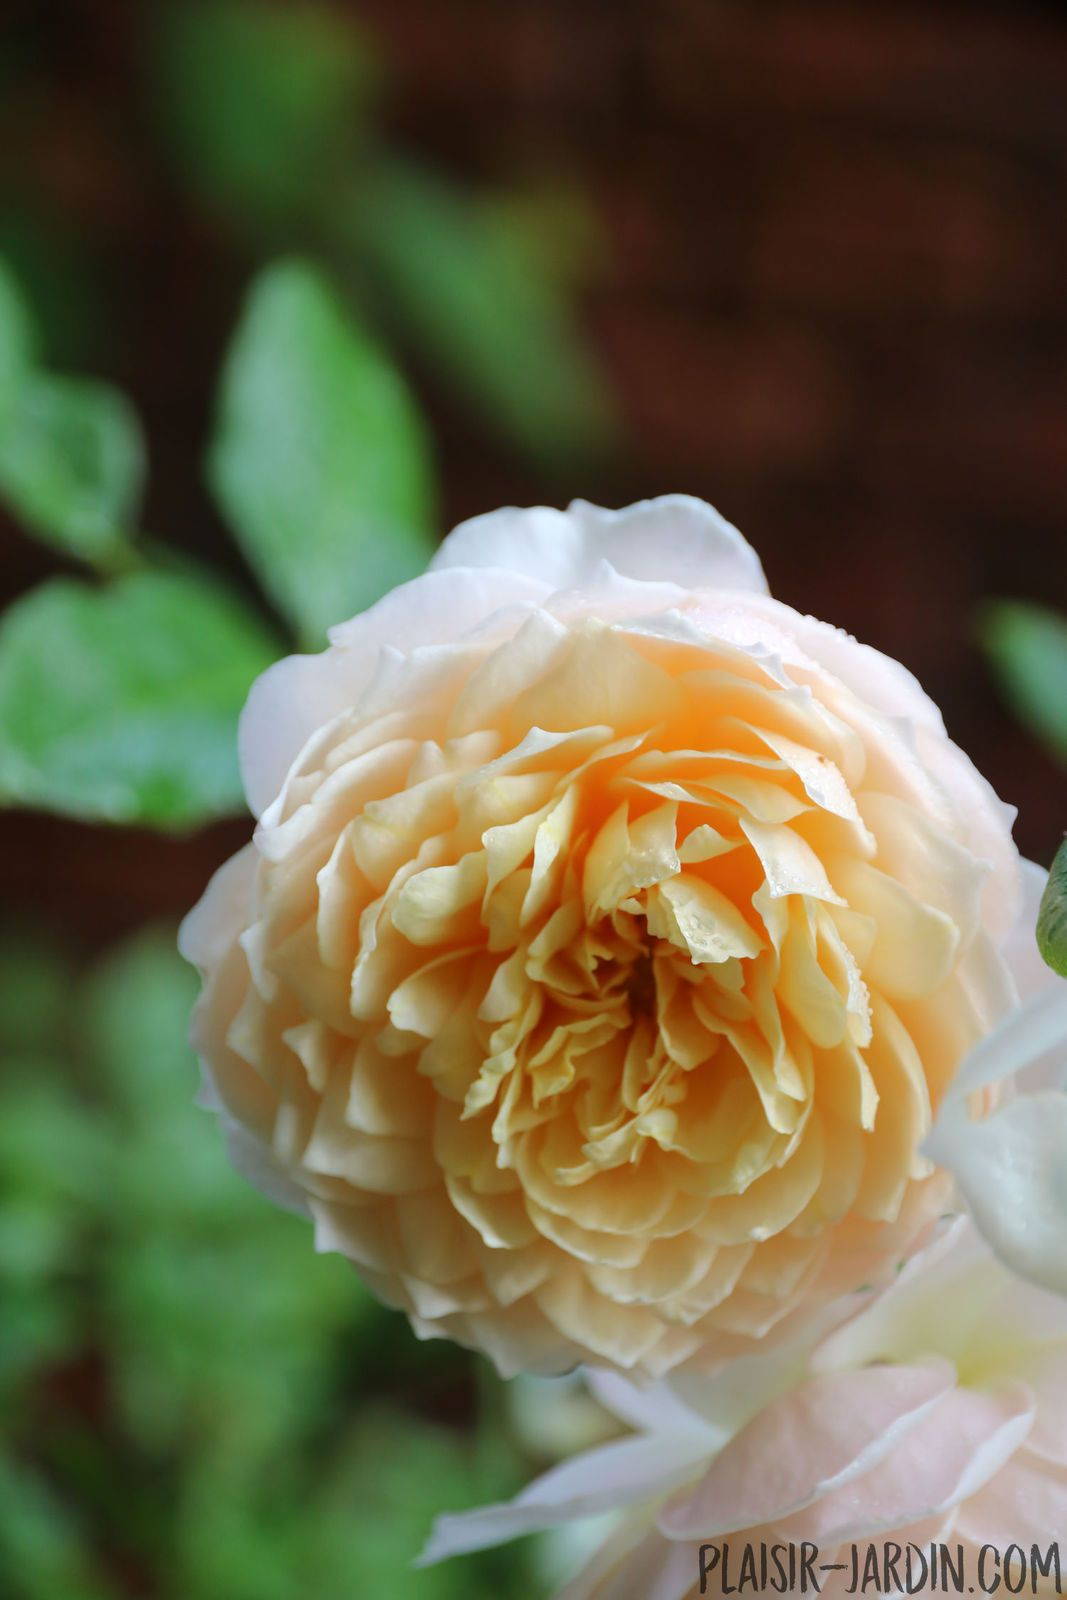 Le rosier 'Ginger Syllabub'